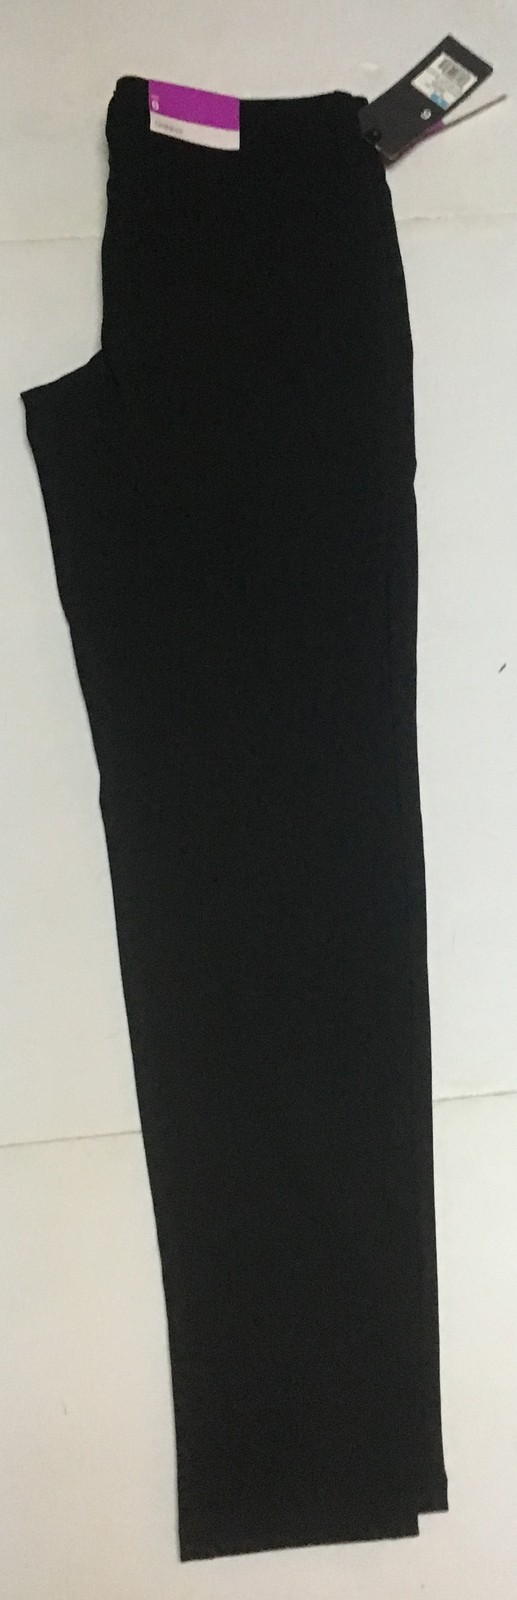 Mossimo Black Skinny Pants Mid-Rise Stretch NWT Sz 6